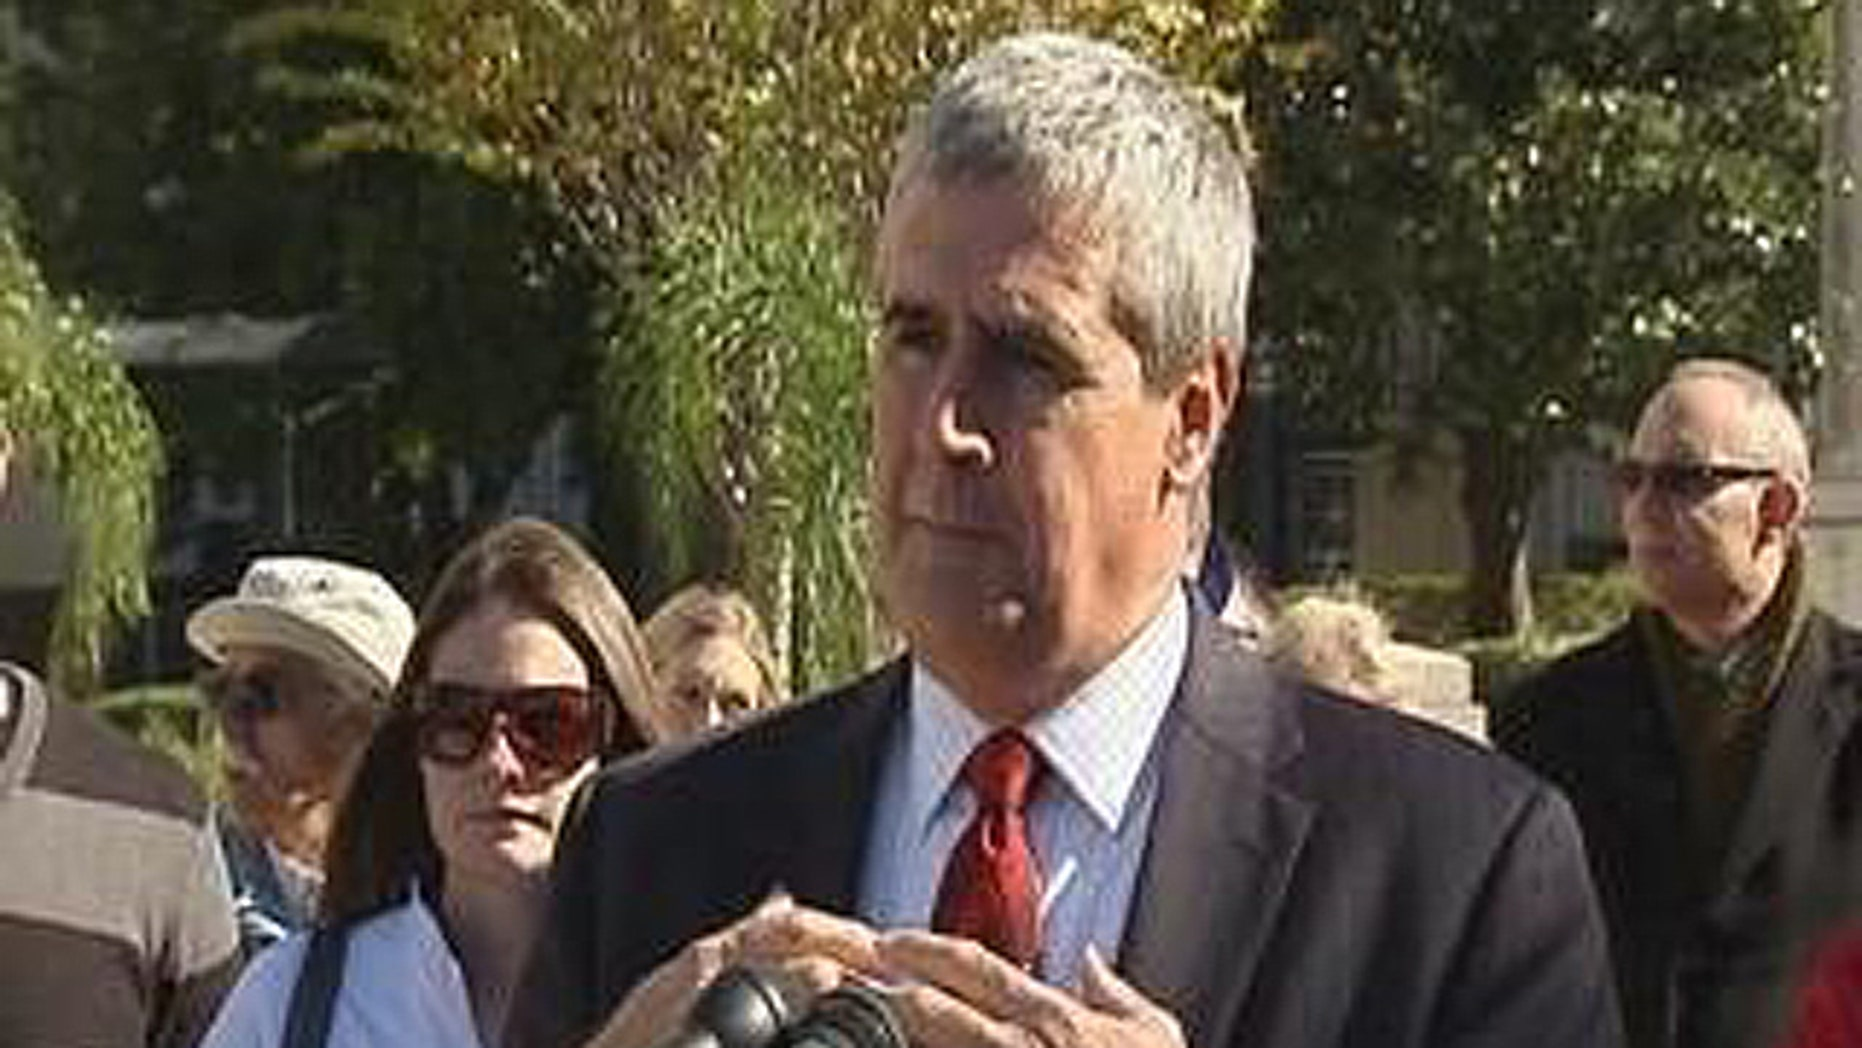 Jeff Ashton, who was elected Tuesday to replace his former boss Lawson Lamar, was part of the prosecution team Lamar appointed to handle the Casey Anthony prosecution last year. (MyFoxOrlando.com)